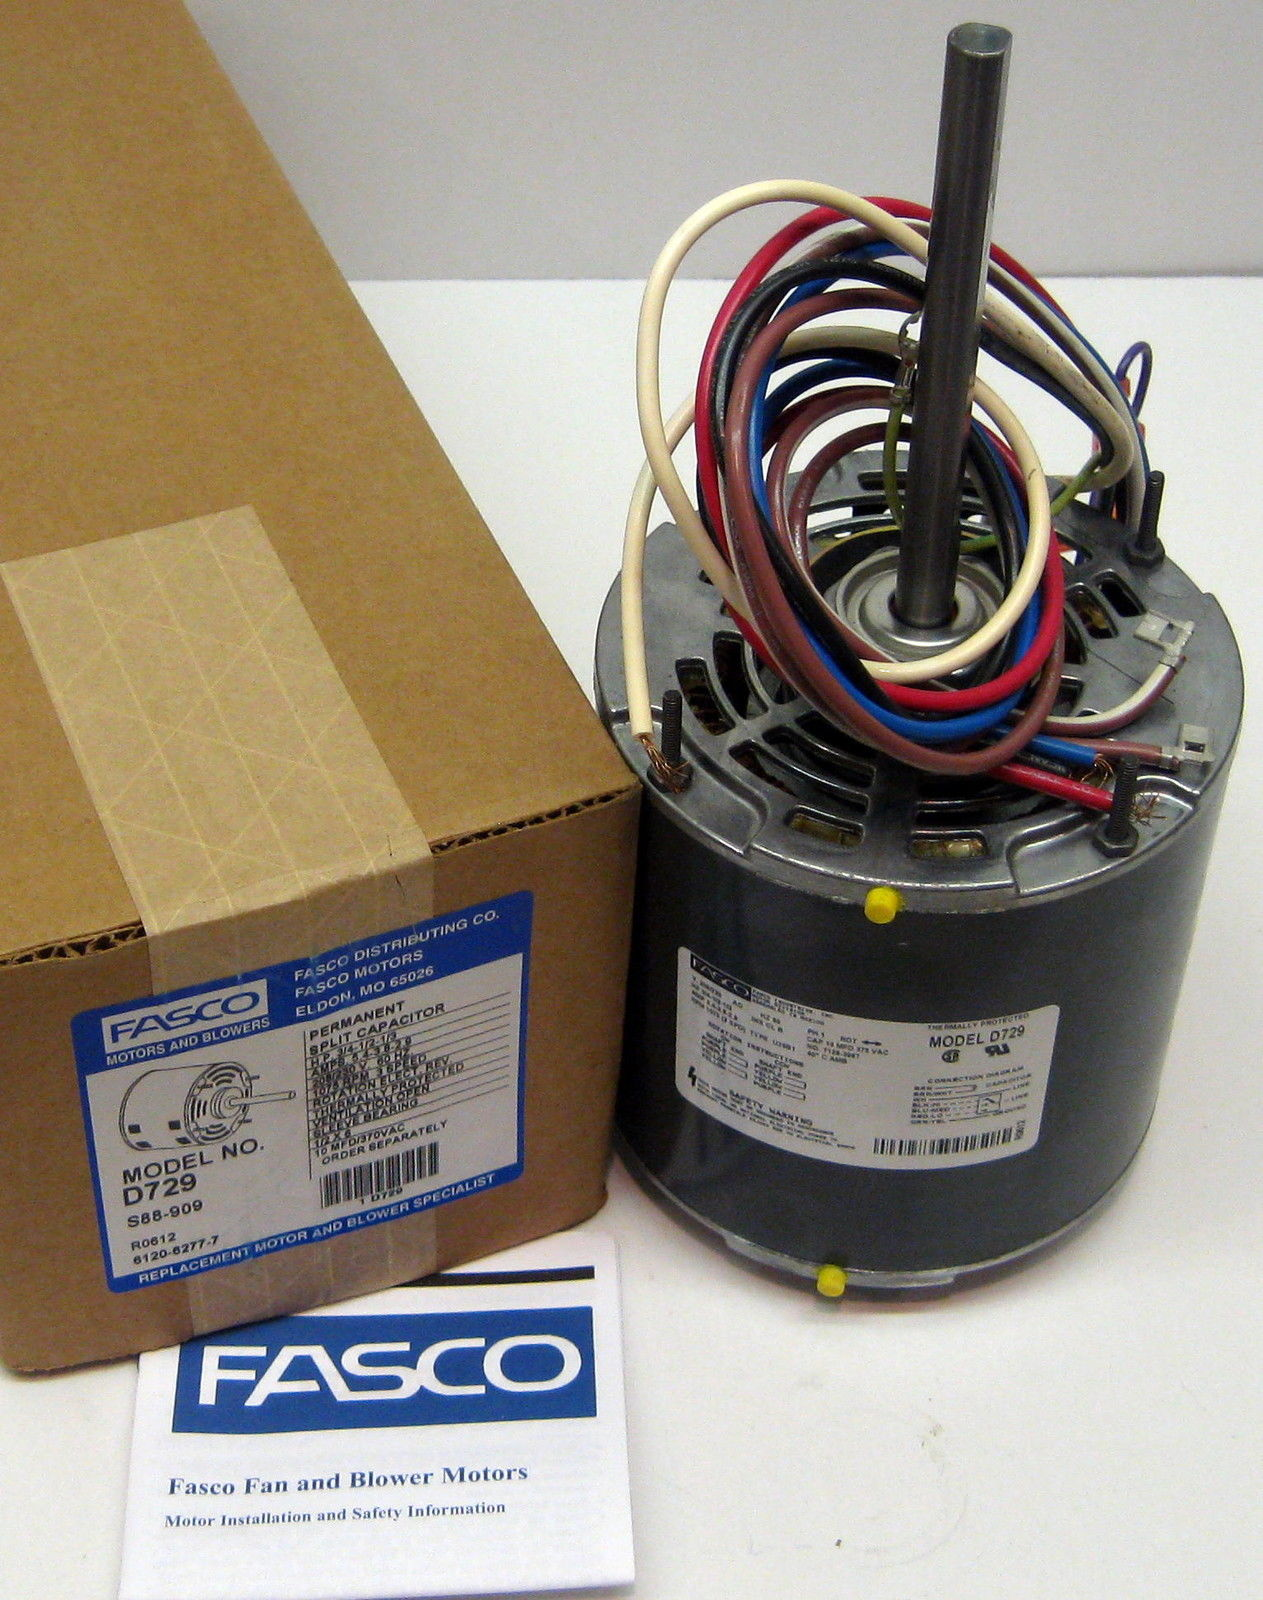 D729 10 Fasco 3 4 Hp 1075 Rpm 208 230 V Speed Furnace Blower Fan Gas Motor Wiring W Cap